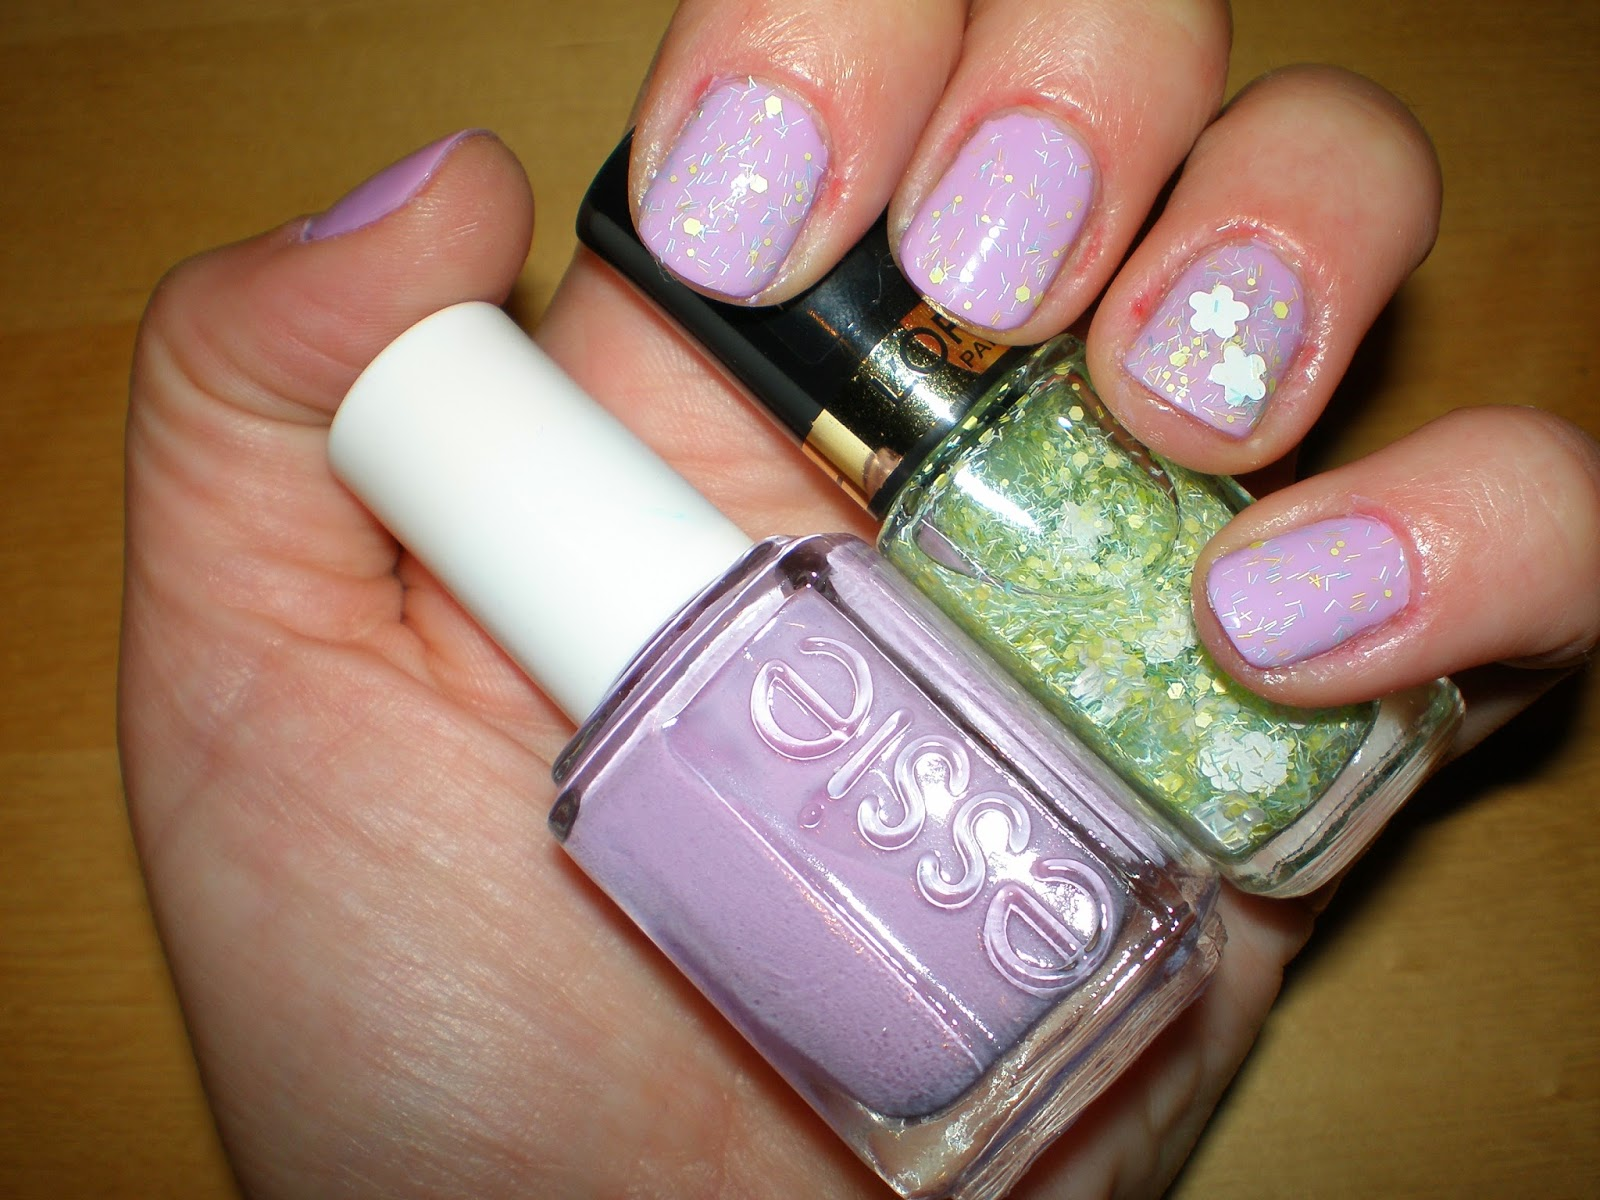 Essie in Bond with whomever and L'oreal Flower Boheme top coat in Woodstock calling